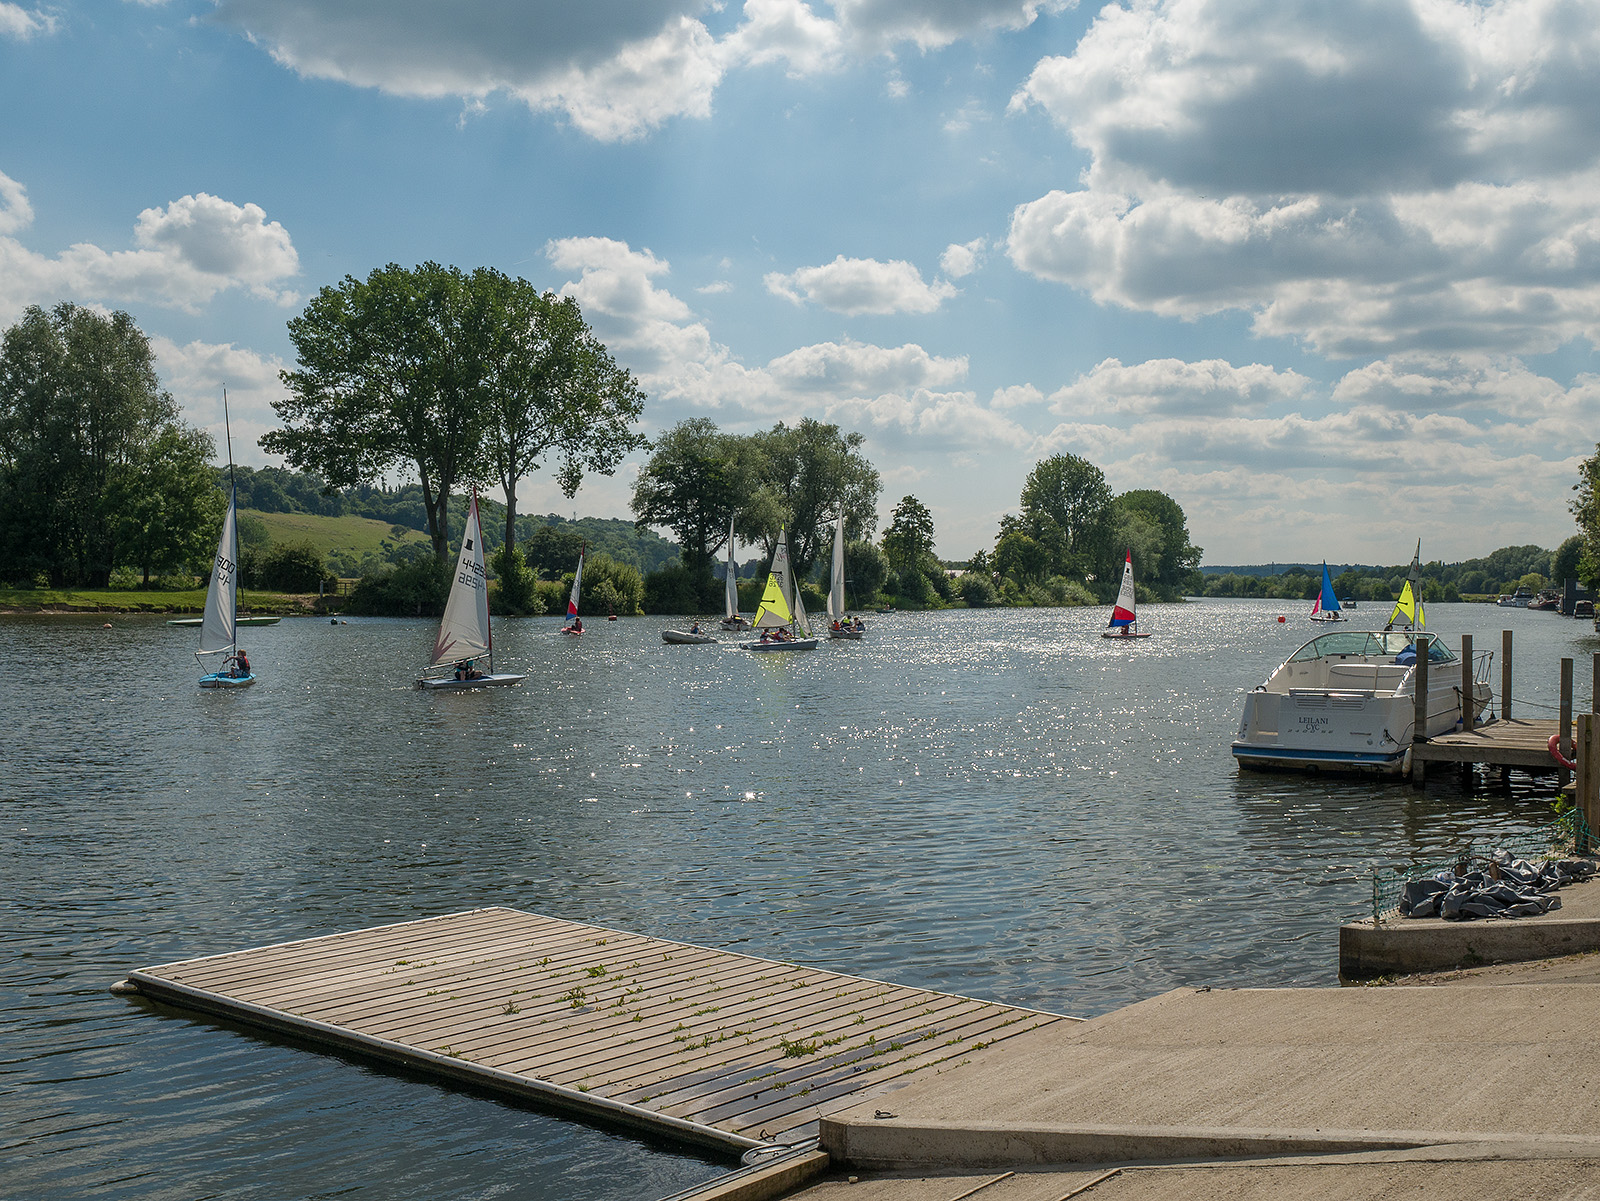 Boats from Upper Thames Sailing Club on the river